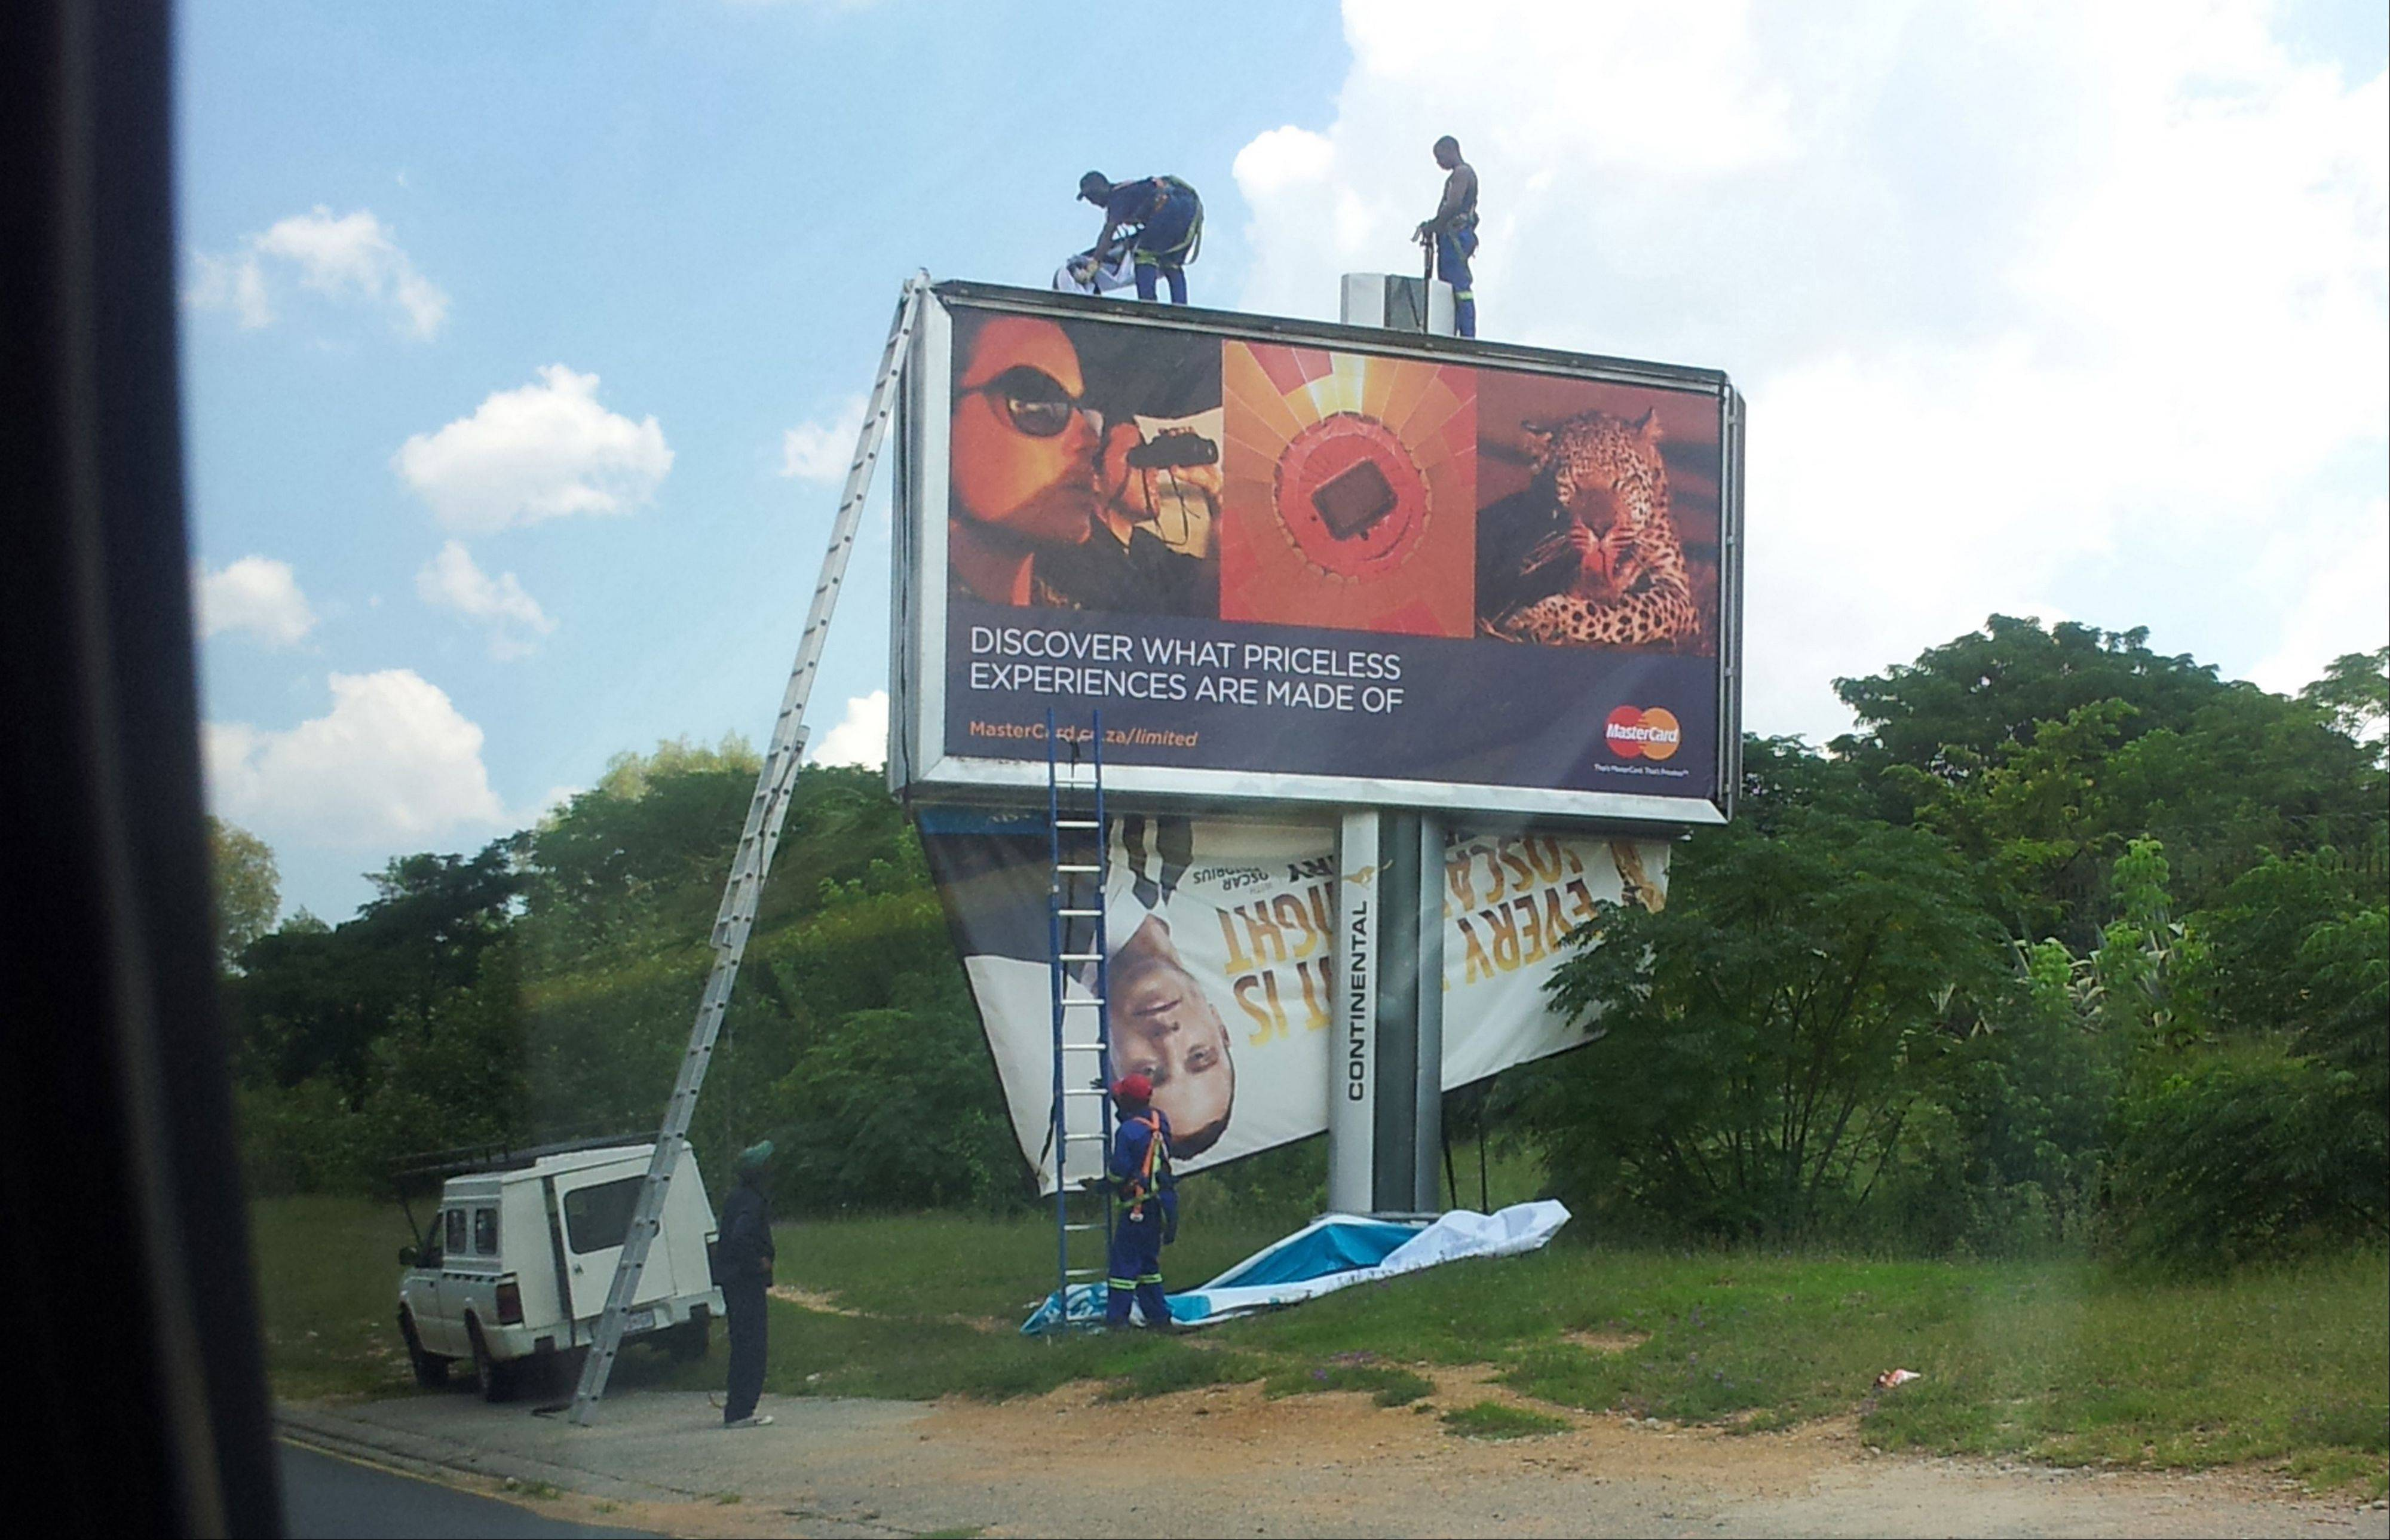 Workers take down a billboard of Olympic athlete Oscar Pistorius endorsing a product in Johannesburg, Thursday, Feb. 14, 2013. Pistorius was charged Thursday with the murder of his girlfriend who was shot inside his home in South Africa.